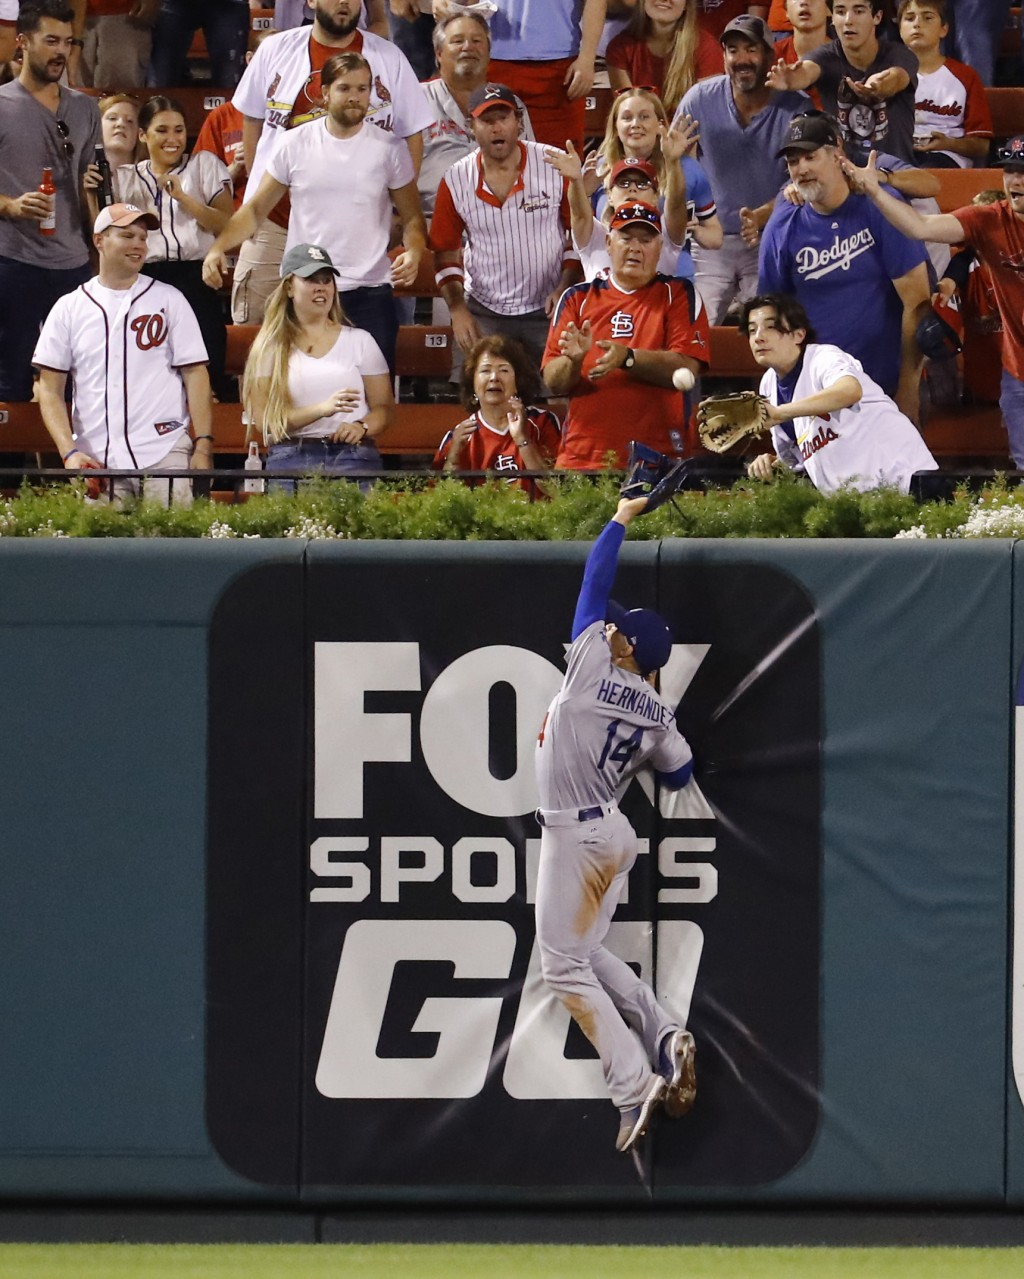 Los Angeles Dodgers center fielder Enrique Hernandez cannot catch a home run hit by St. Louis Cardinals' Tyson Ross during the fifth inning of a baseb